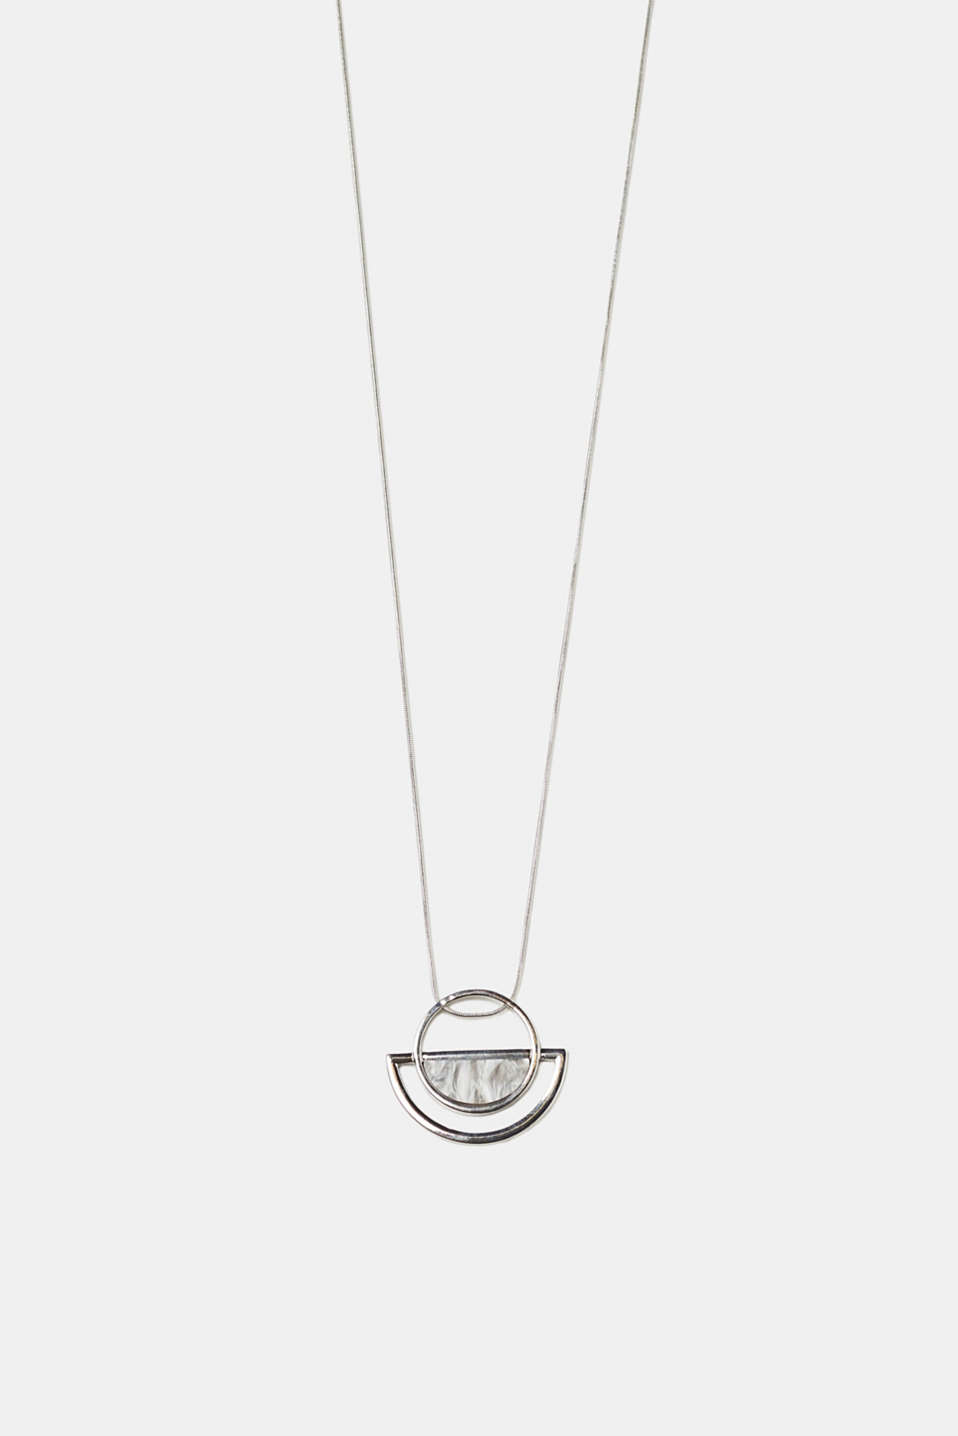 The distinctive pendant with a mother-of-pearl effect makes this necklace perfect for giving your look a cool finishing touch.